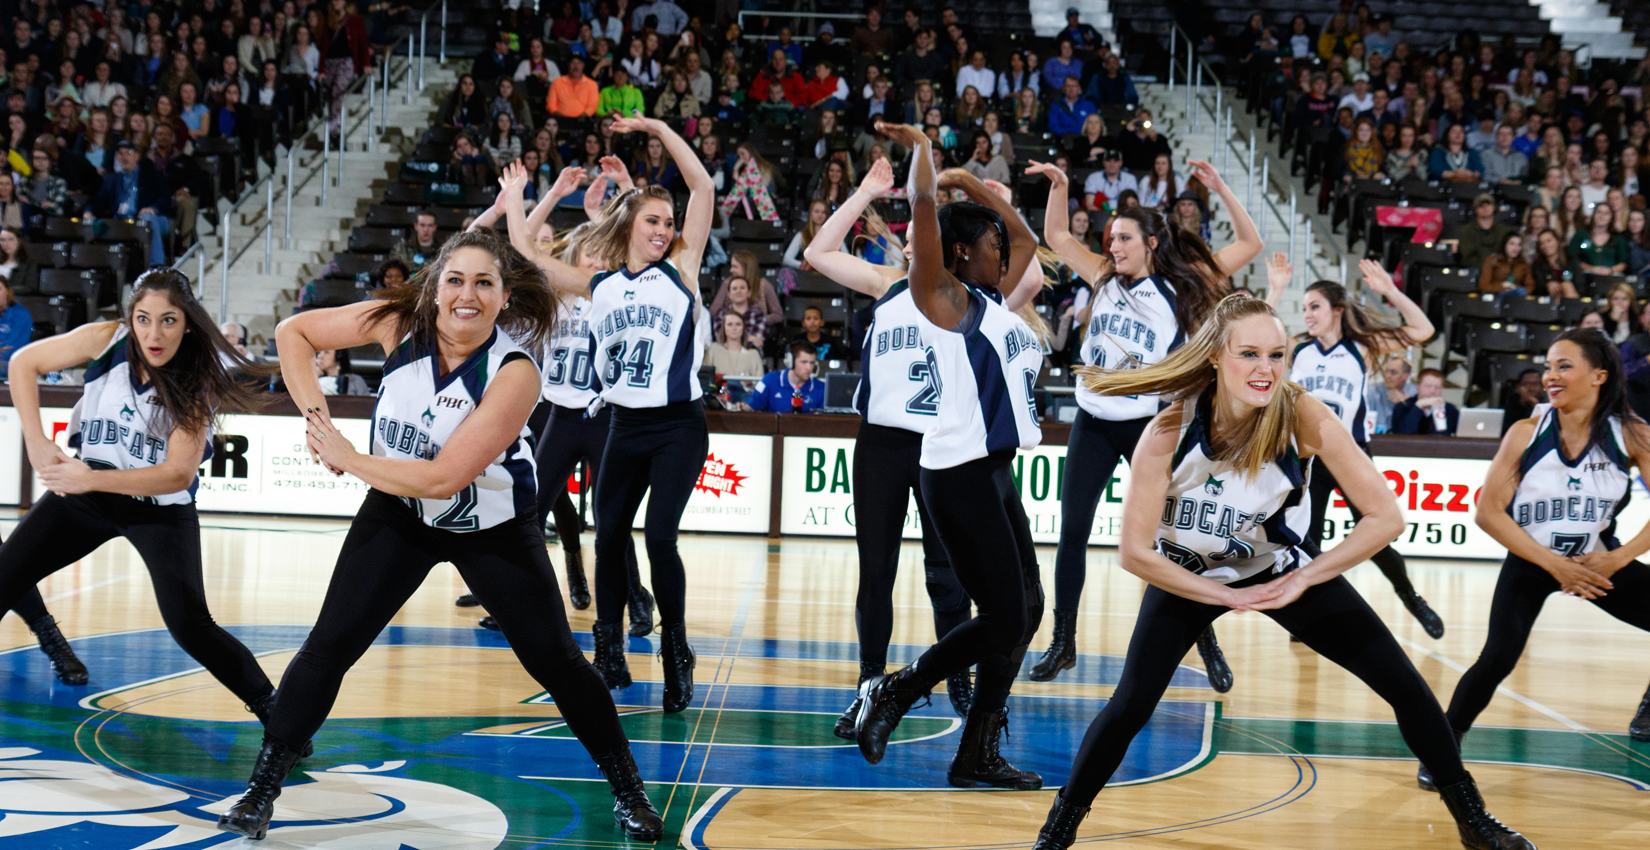 Sassy Cats Dance Team to Hold Tryouts in May